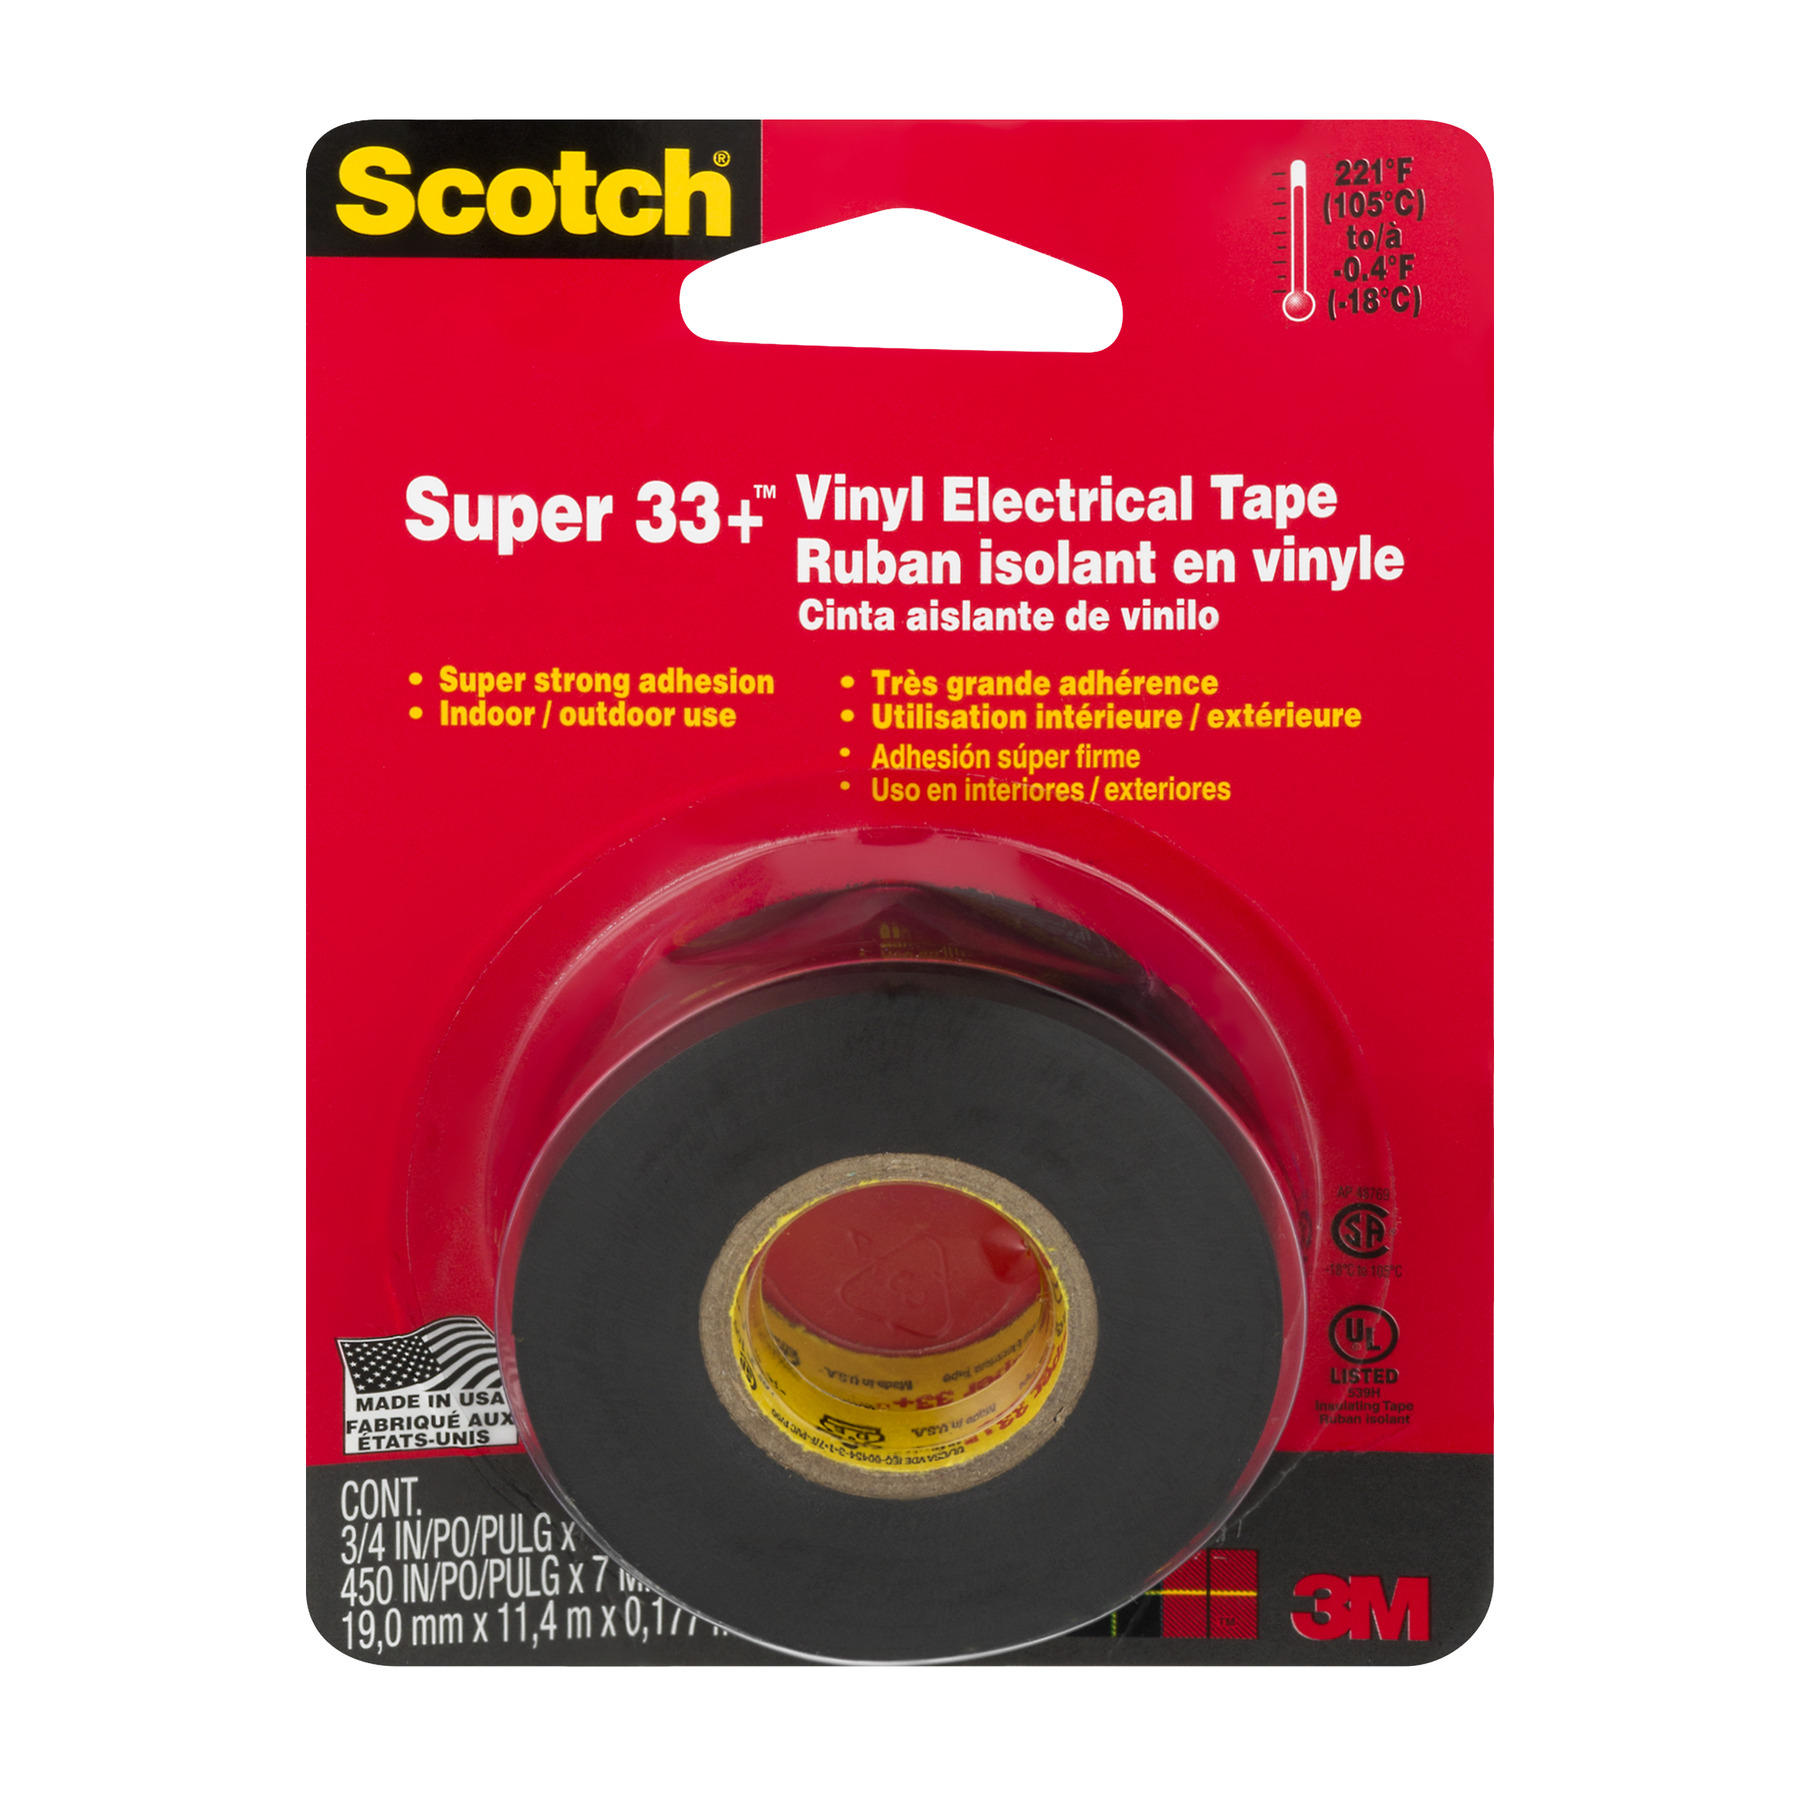 Scotch Vinyl Electrical Tape, 1.0 CT